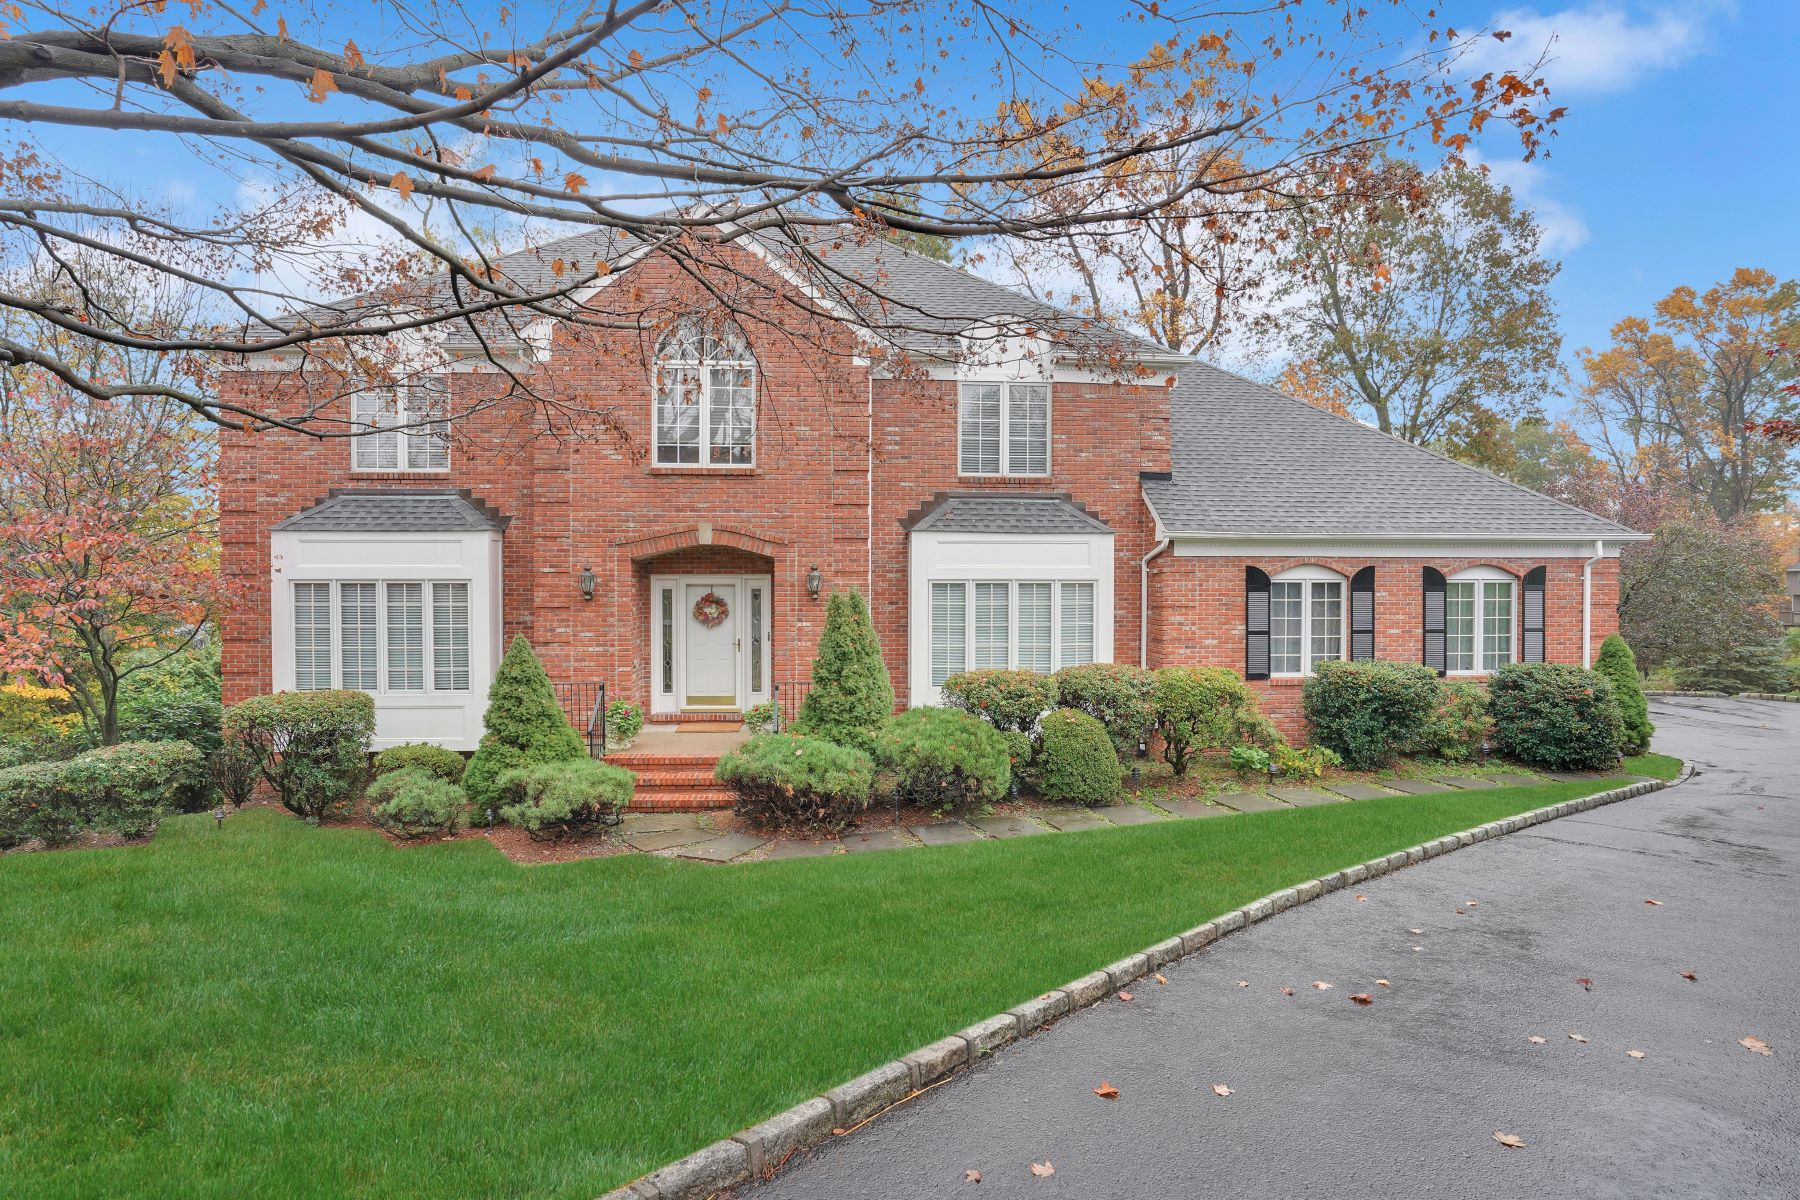 Single Family Homes for Active at Amazing Views 3 Tree Top Terrace Morris Township, New Jersey 07960 United States